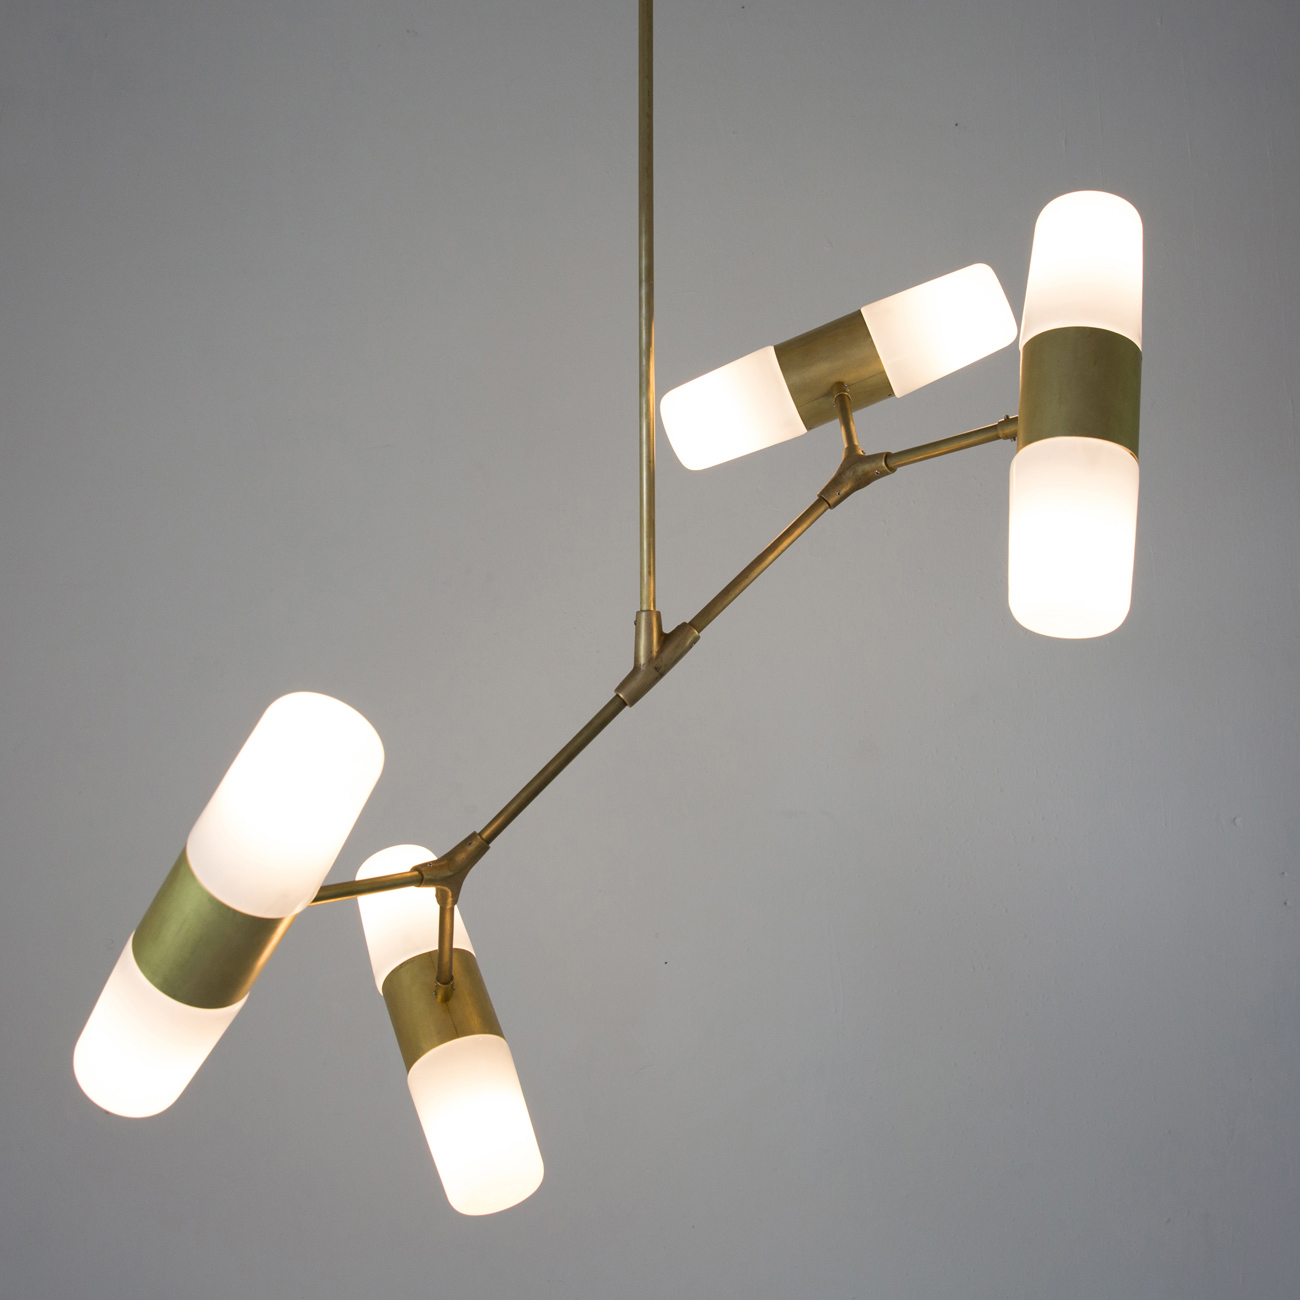 Pendant-Model-01-A-lit-whole2.jpg